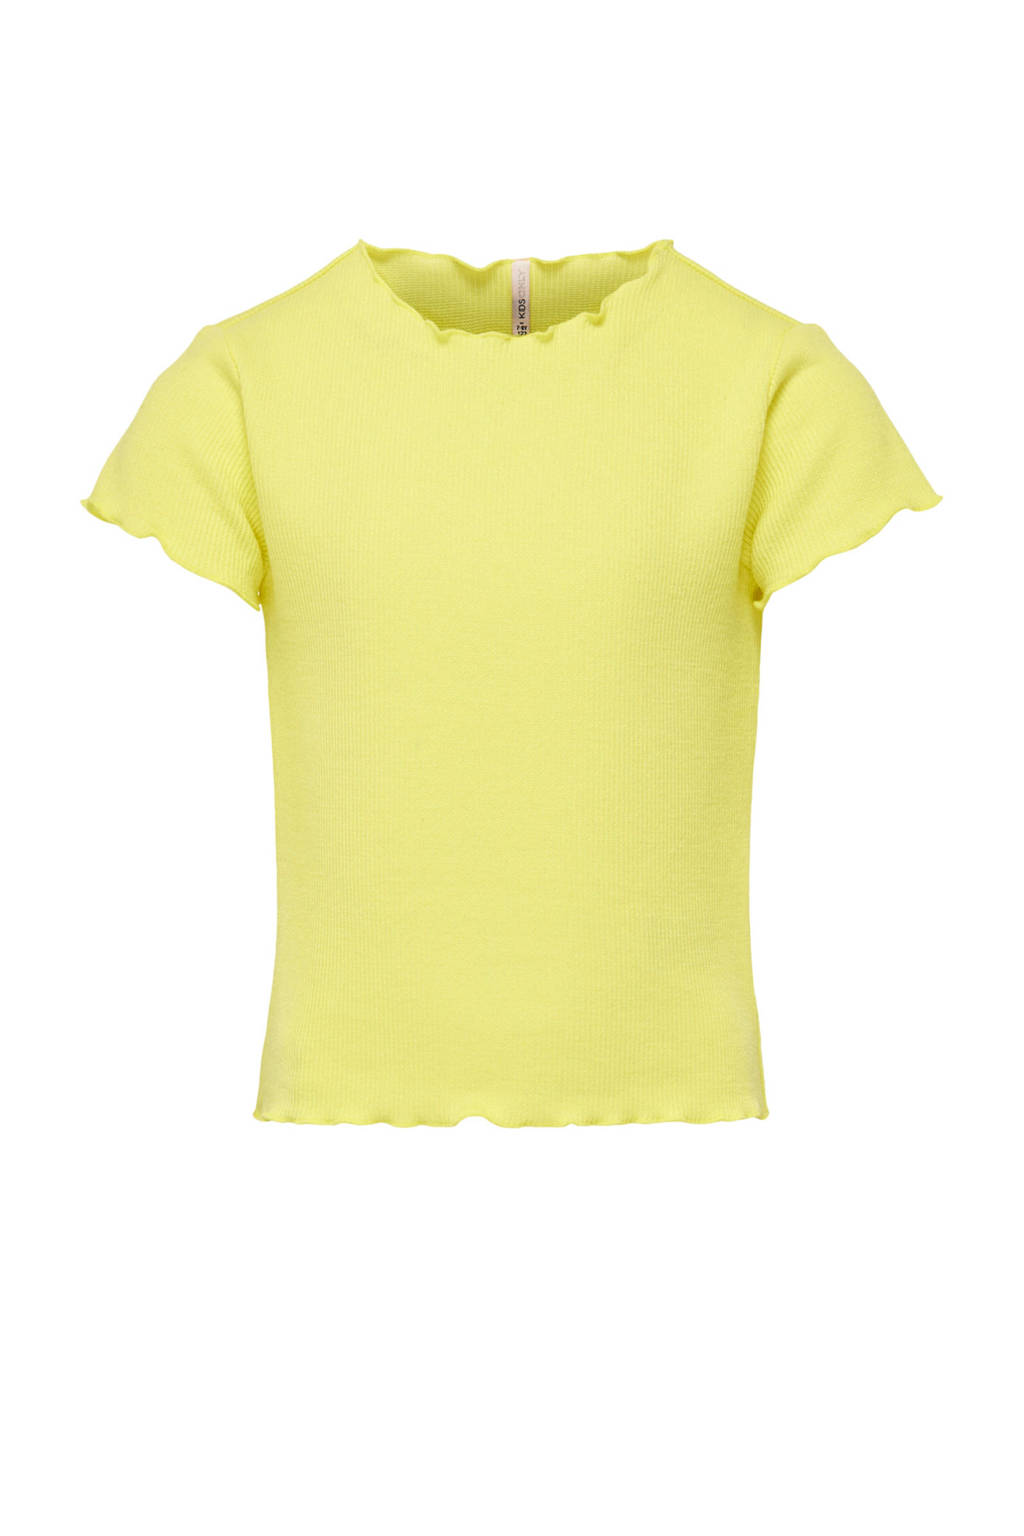 KIDS ONLY cropped T-shirt geel, Geel